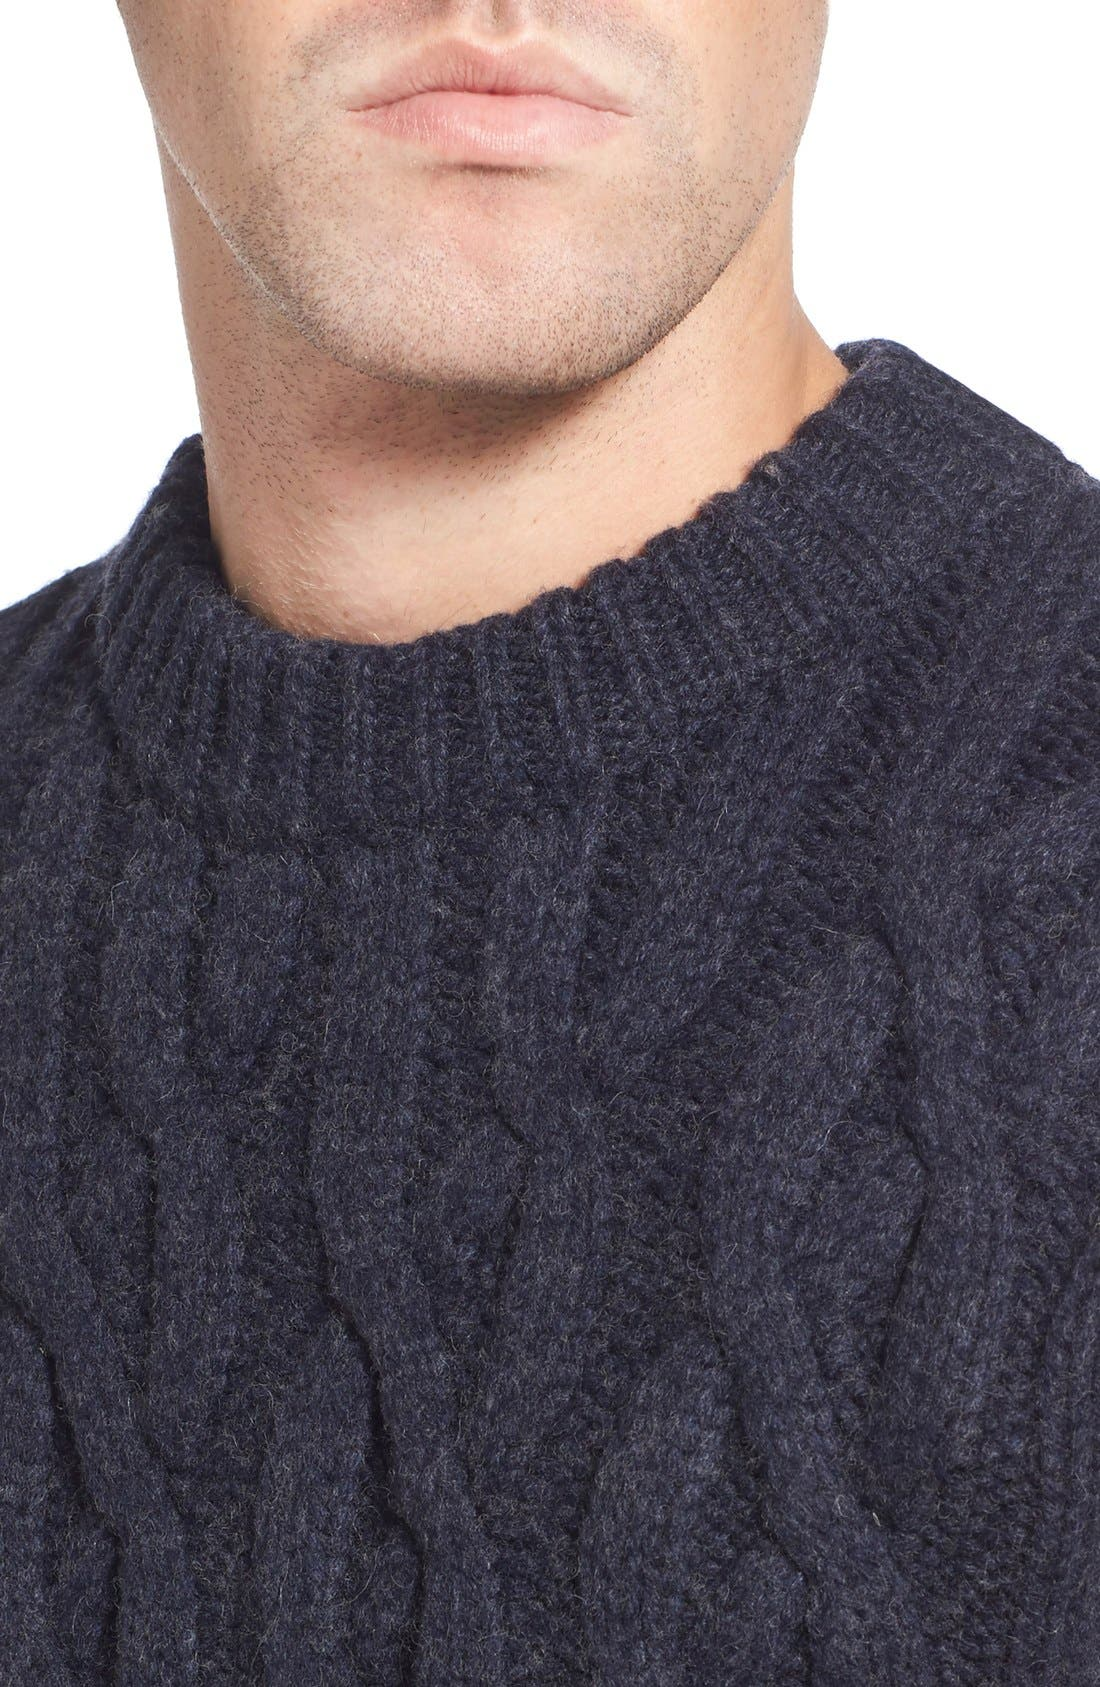 Regular Fit Cable Knit Crewneck Wool Blend Sweater,                             Alternate thumbnail 4, color,                             Navy